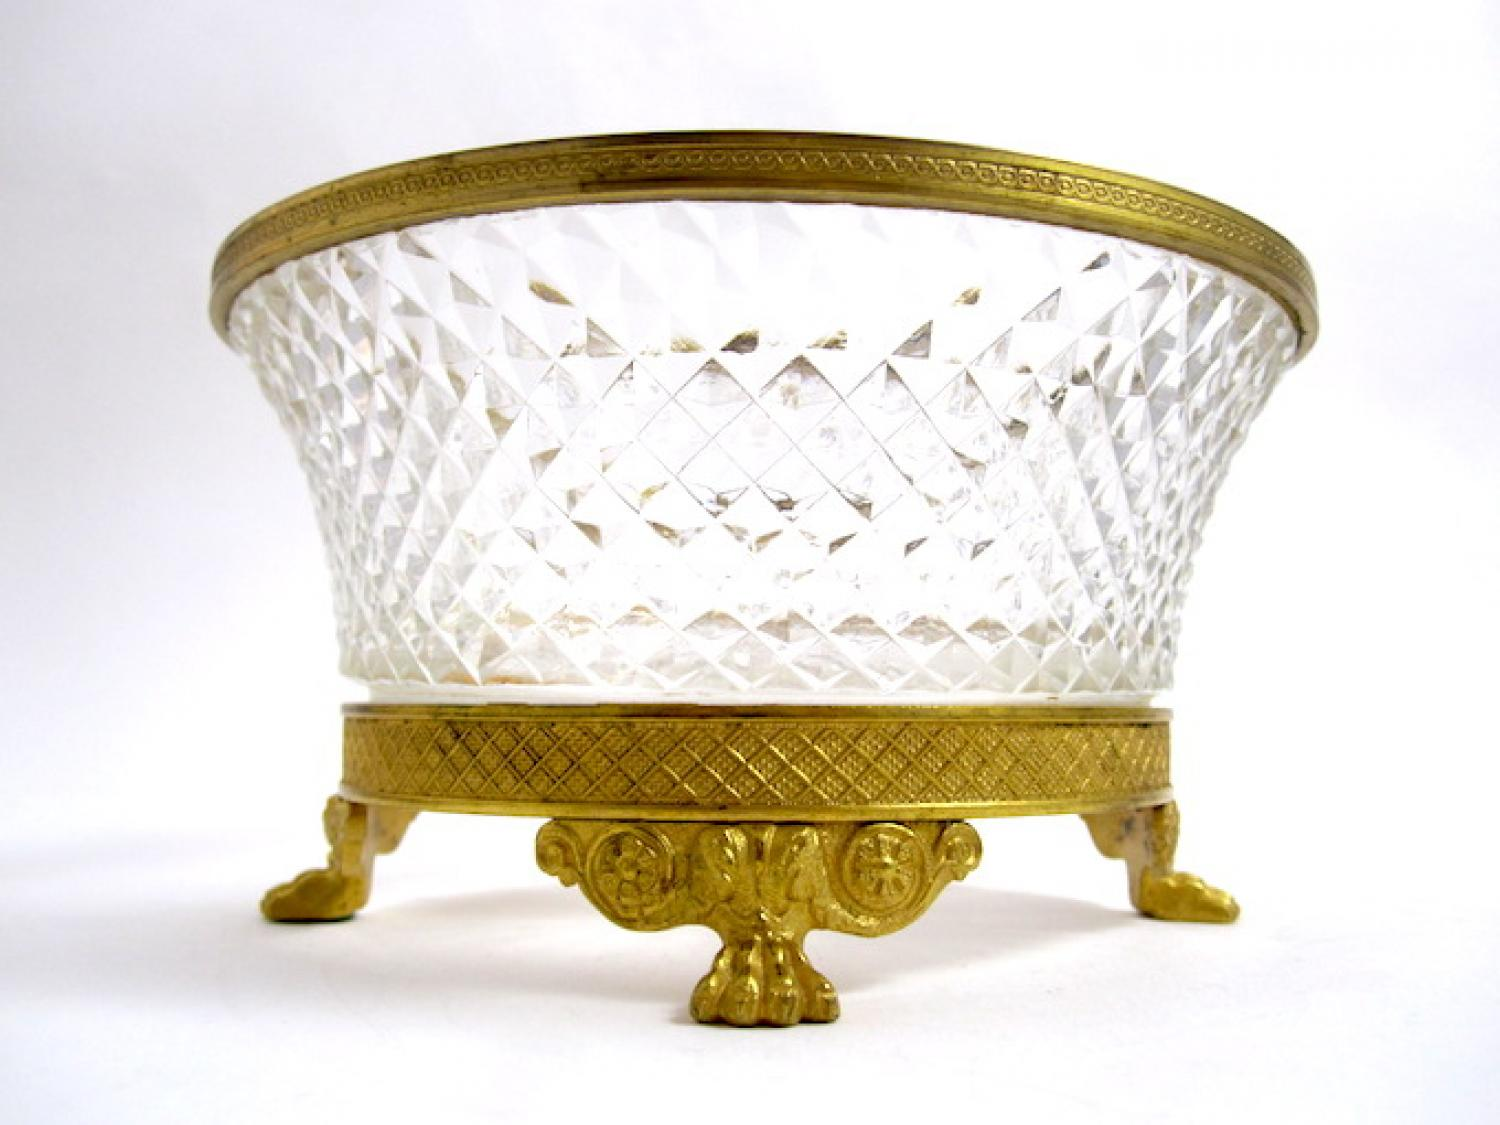 Antique Empire Bon Bon Dish